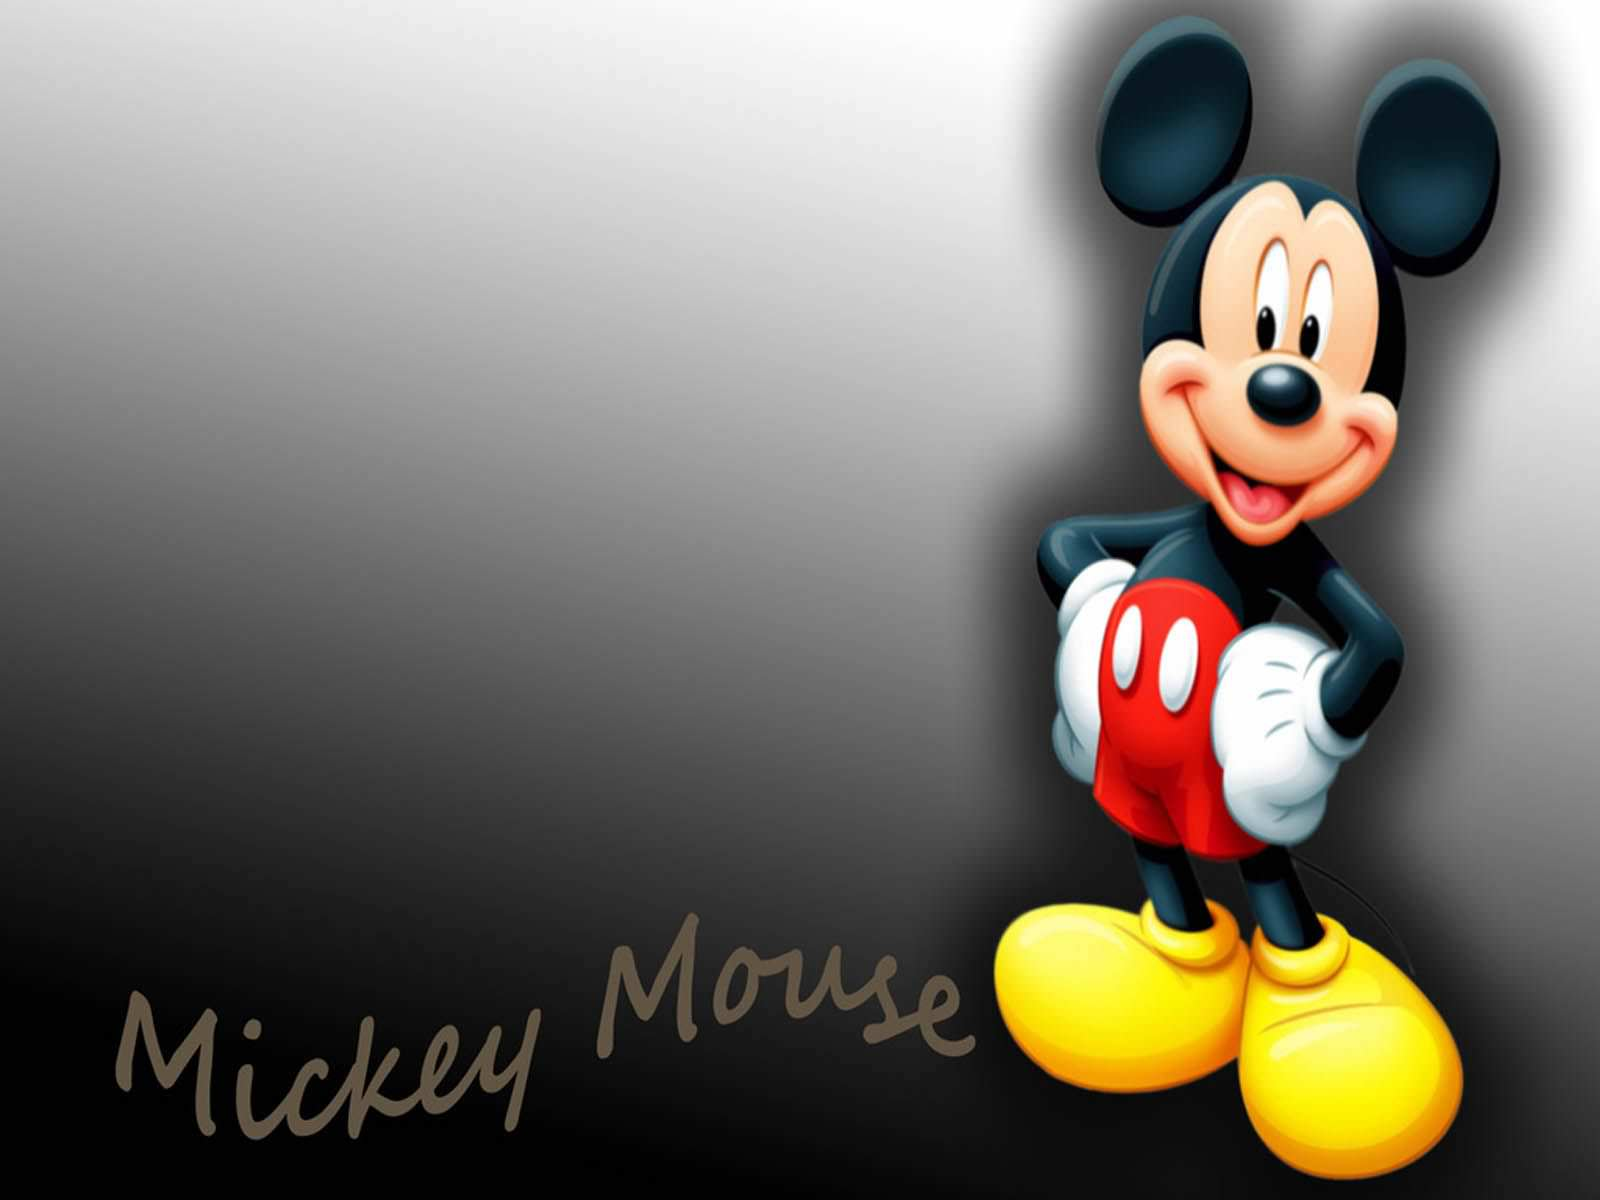 Awesome Mickey Mouse Wallpaper